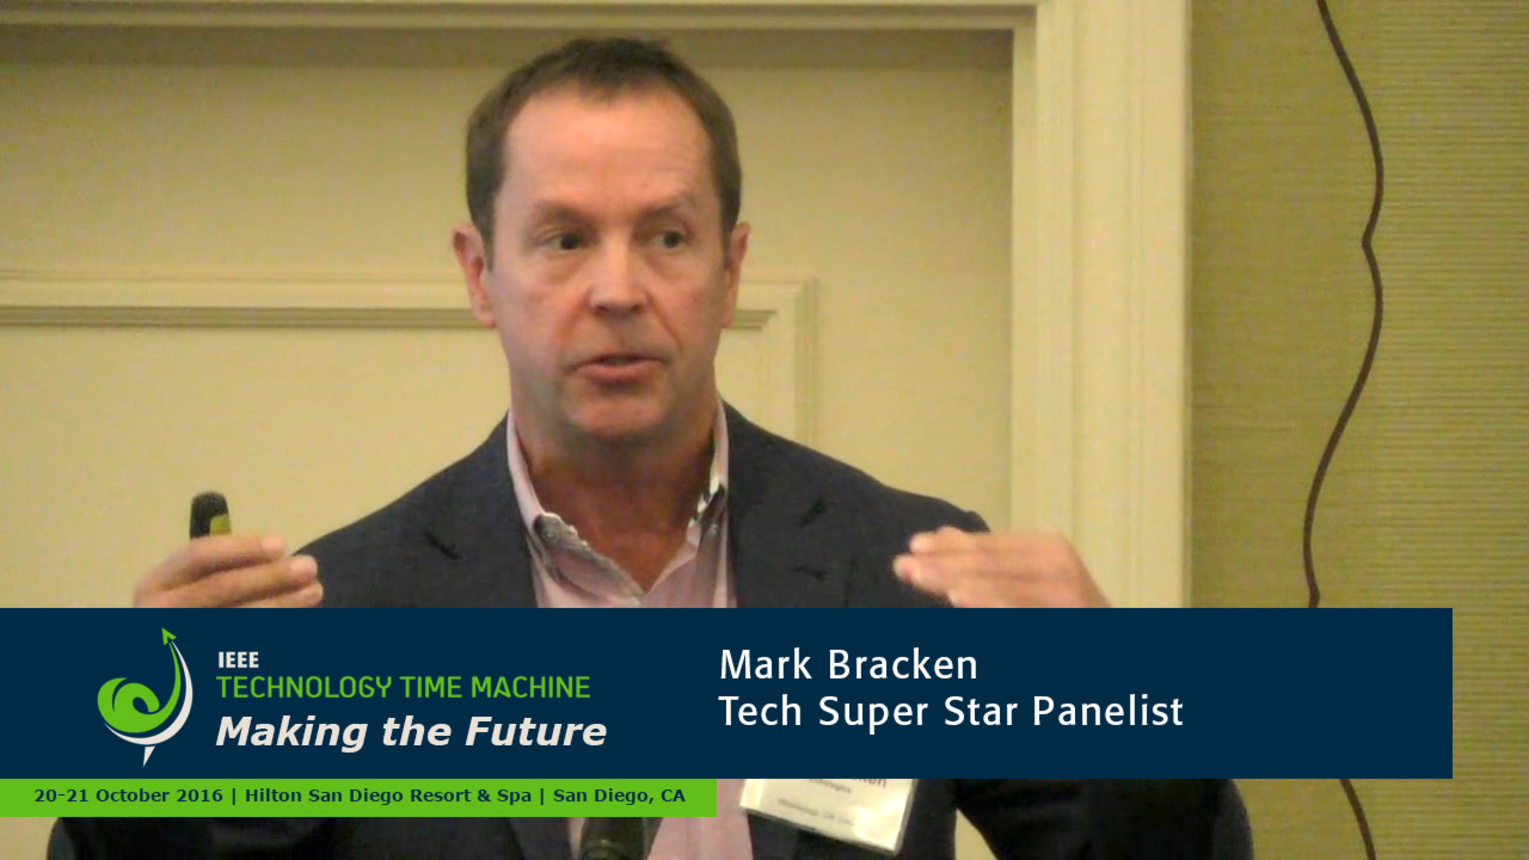 Tech Super Stars Panelist - Marc Bracken: 2016 Technology Time Machine